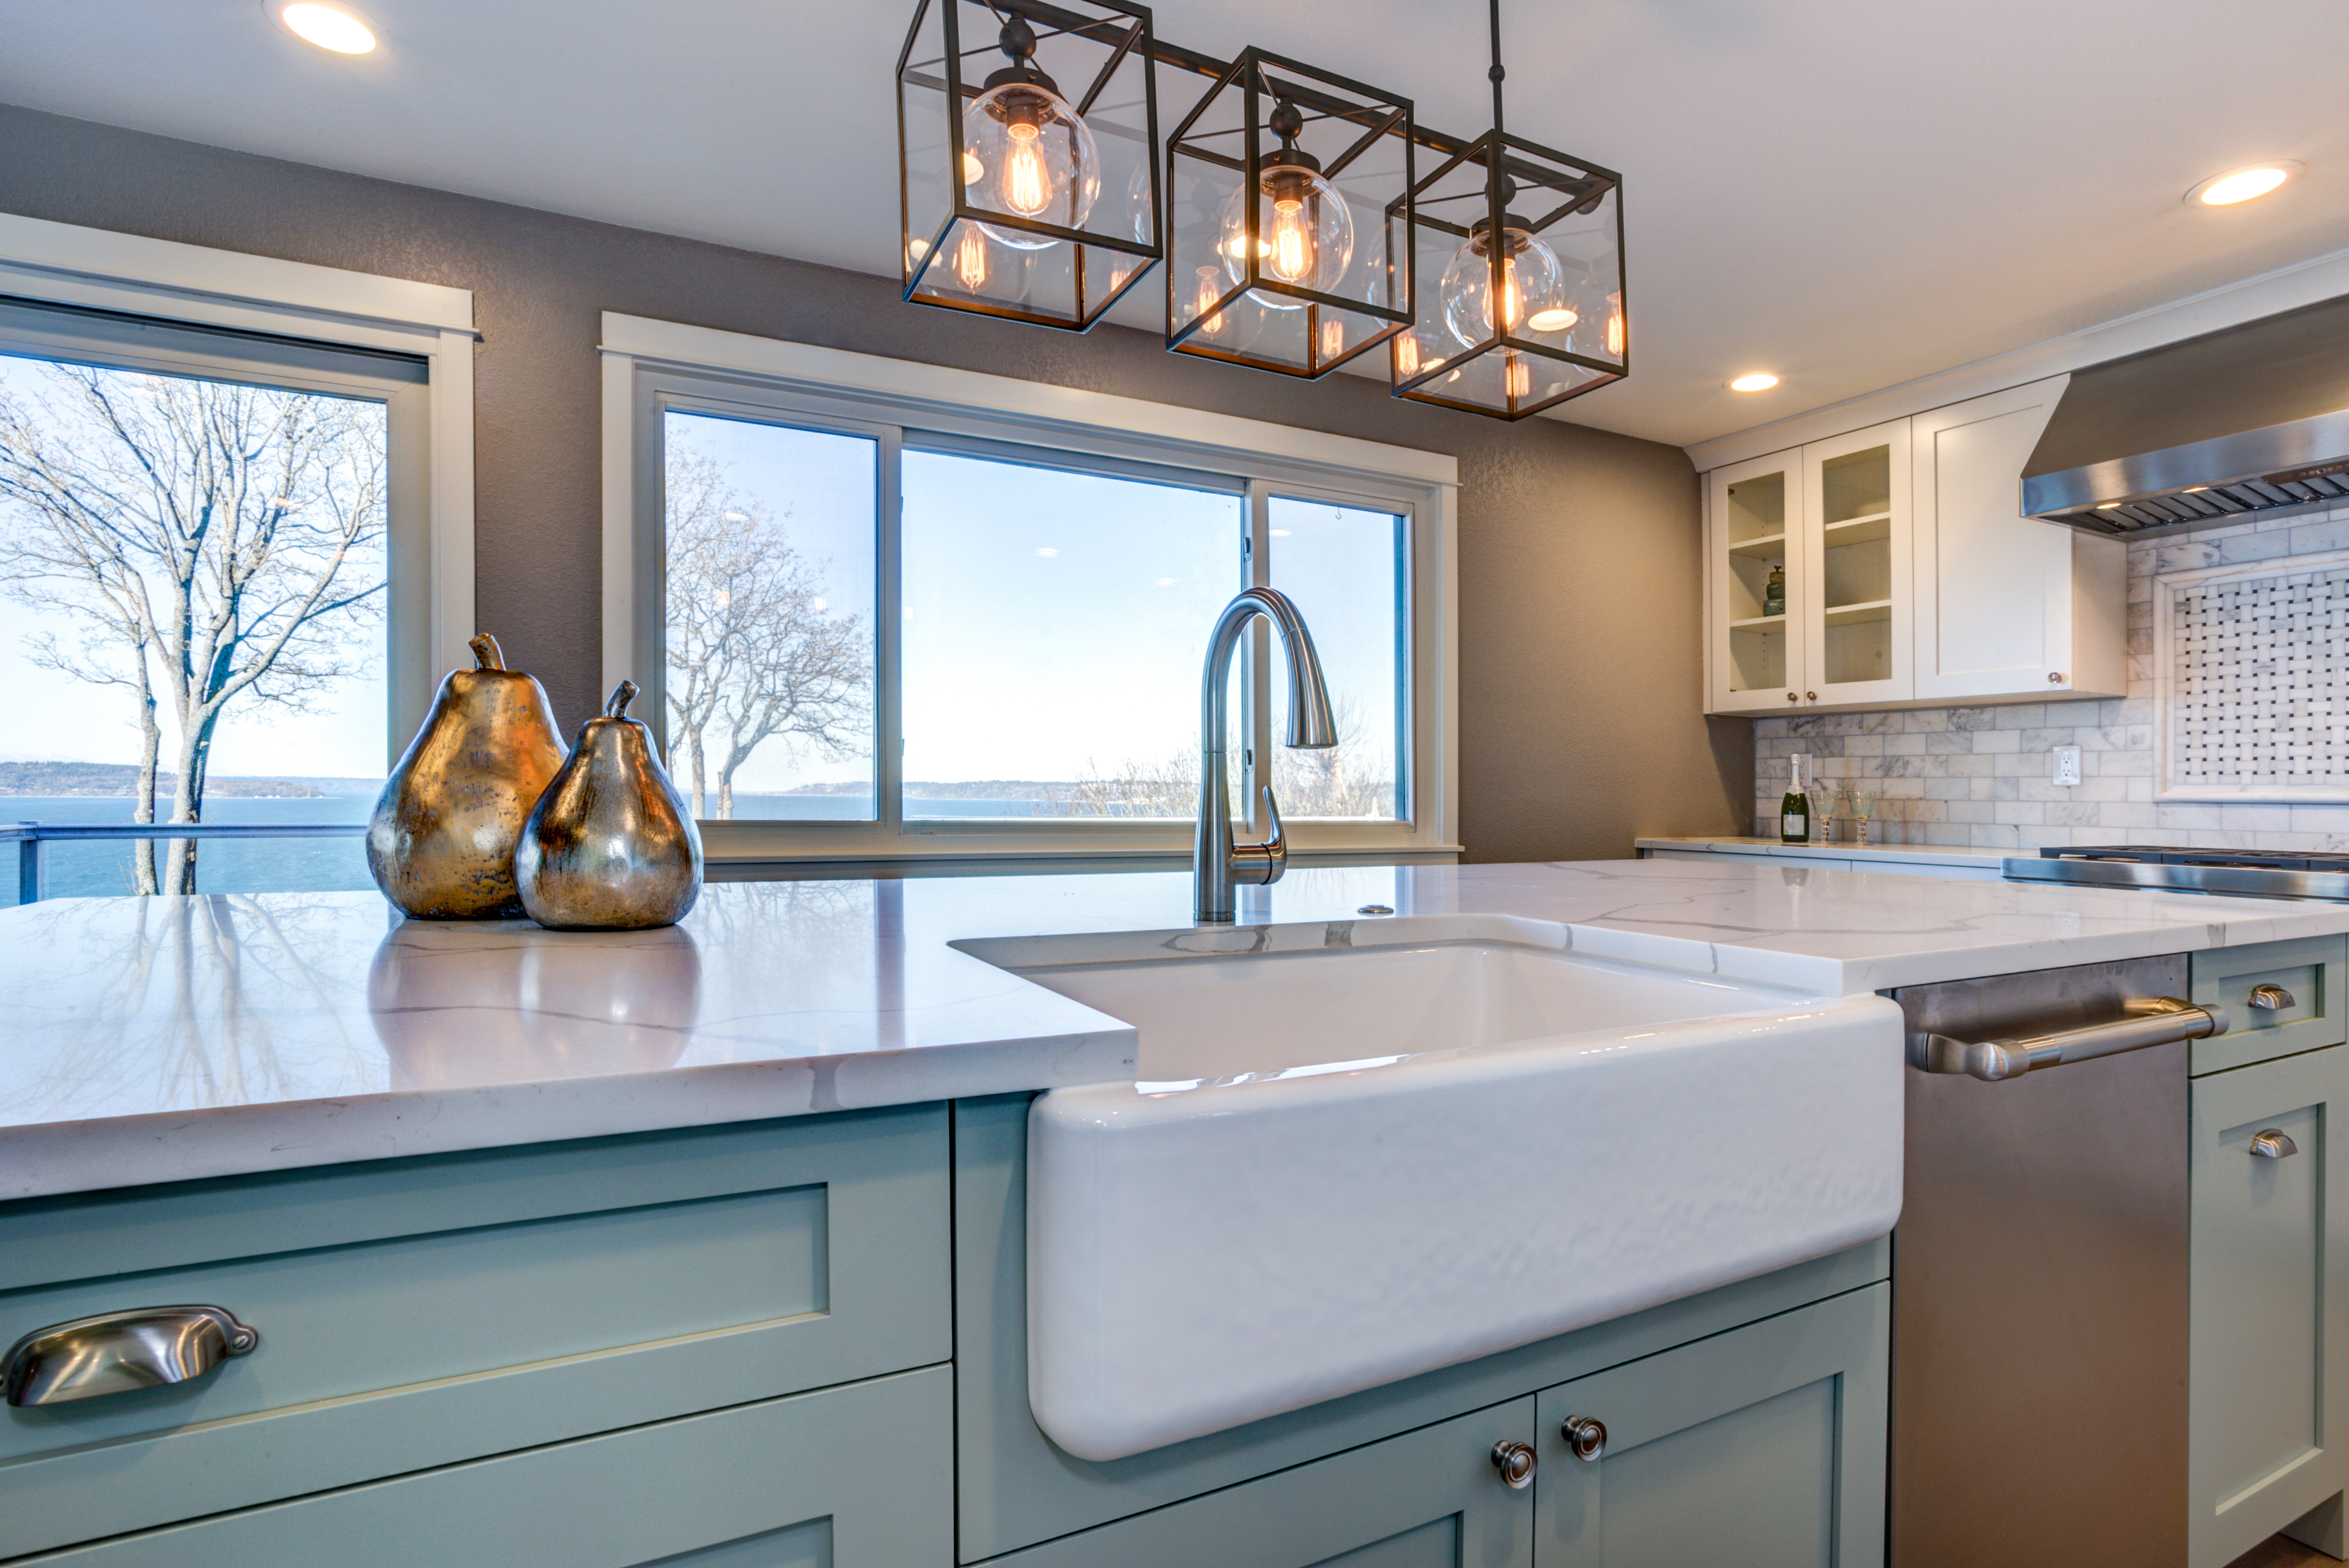 How Much Does It Cost To Install A Farmhouse Sink Hunker